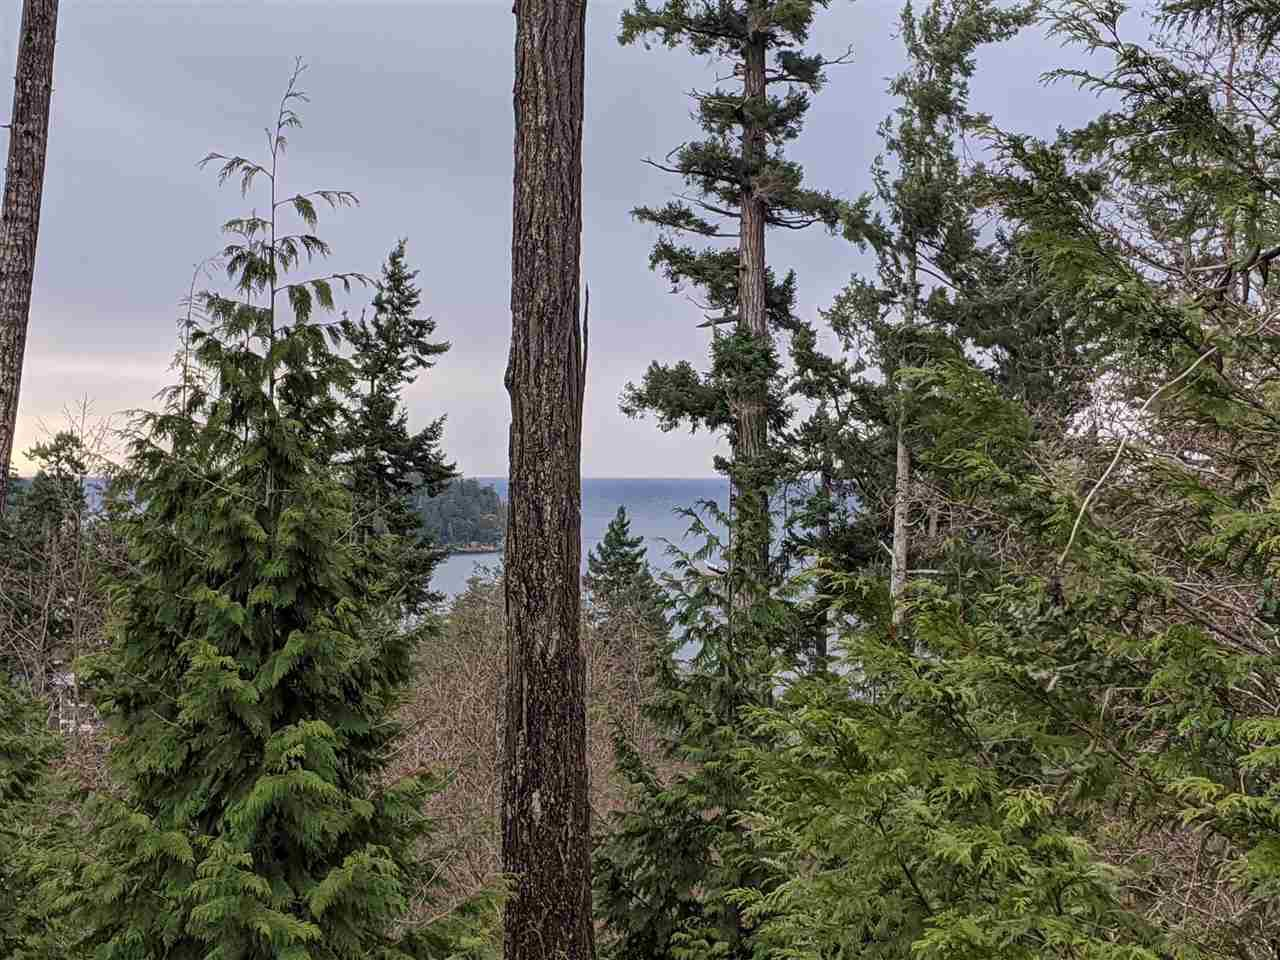 Main Photo: LOT 71 ALLEN CRESCENT in Pender Harbour: Pender Harbour Egmont Land for sale (Sunshine Coast)  : MLS®# R2430664